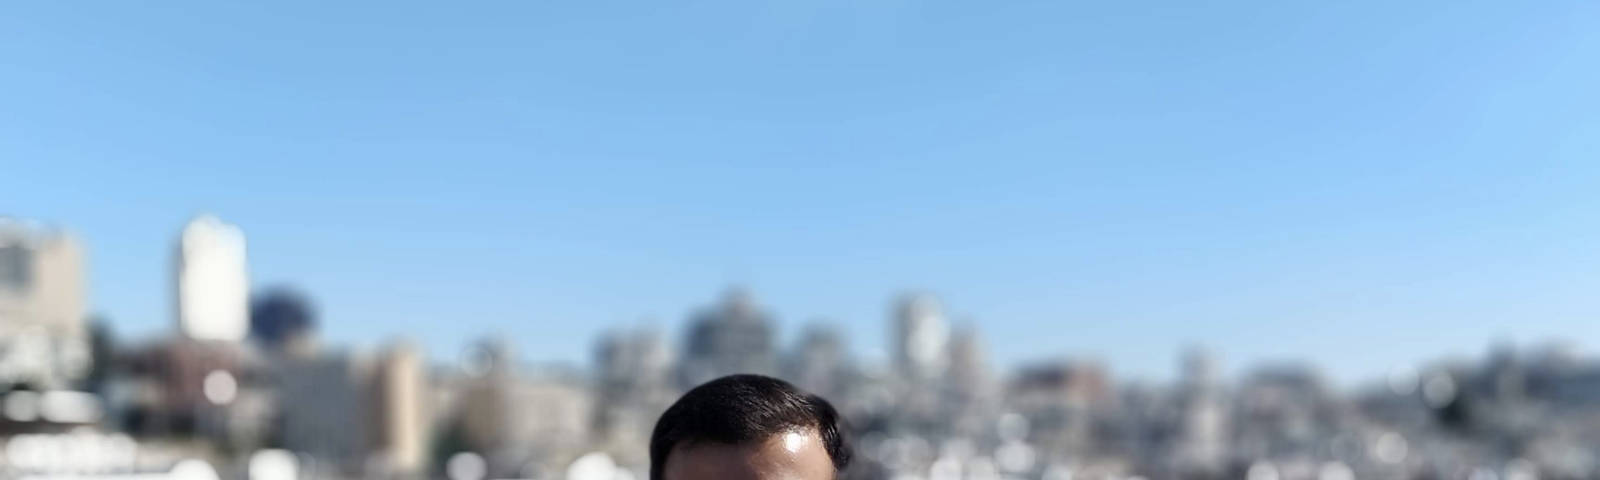 Shreyas stands smiling in front of a city skyline.